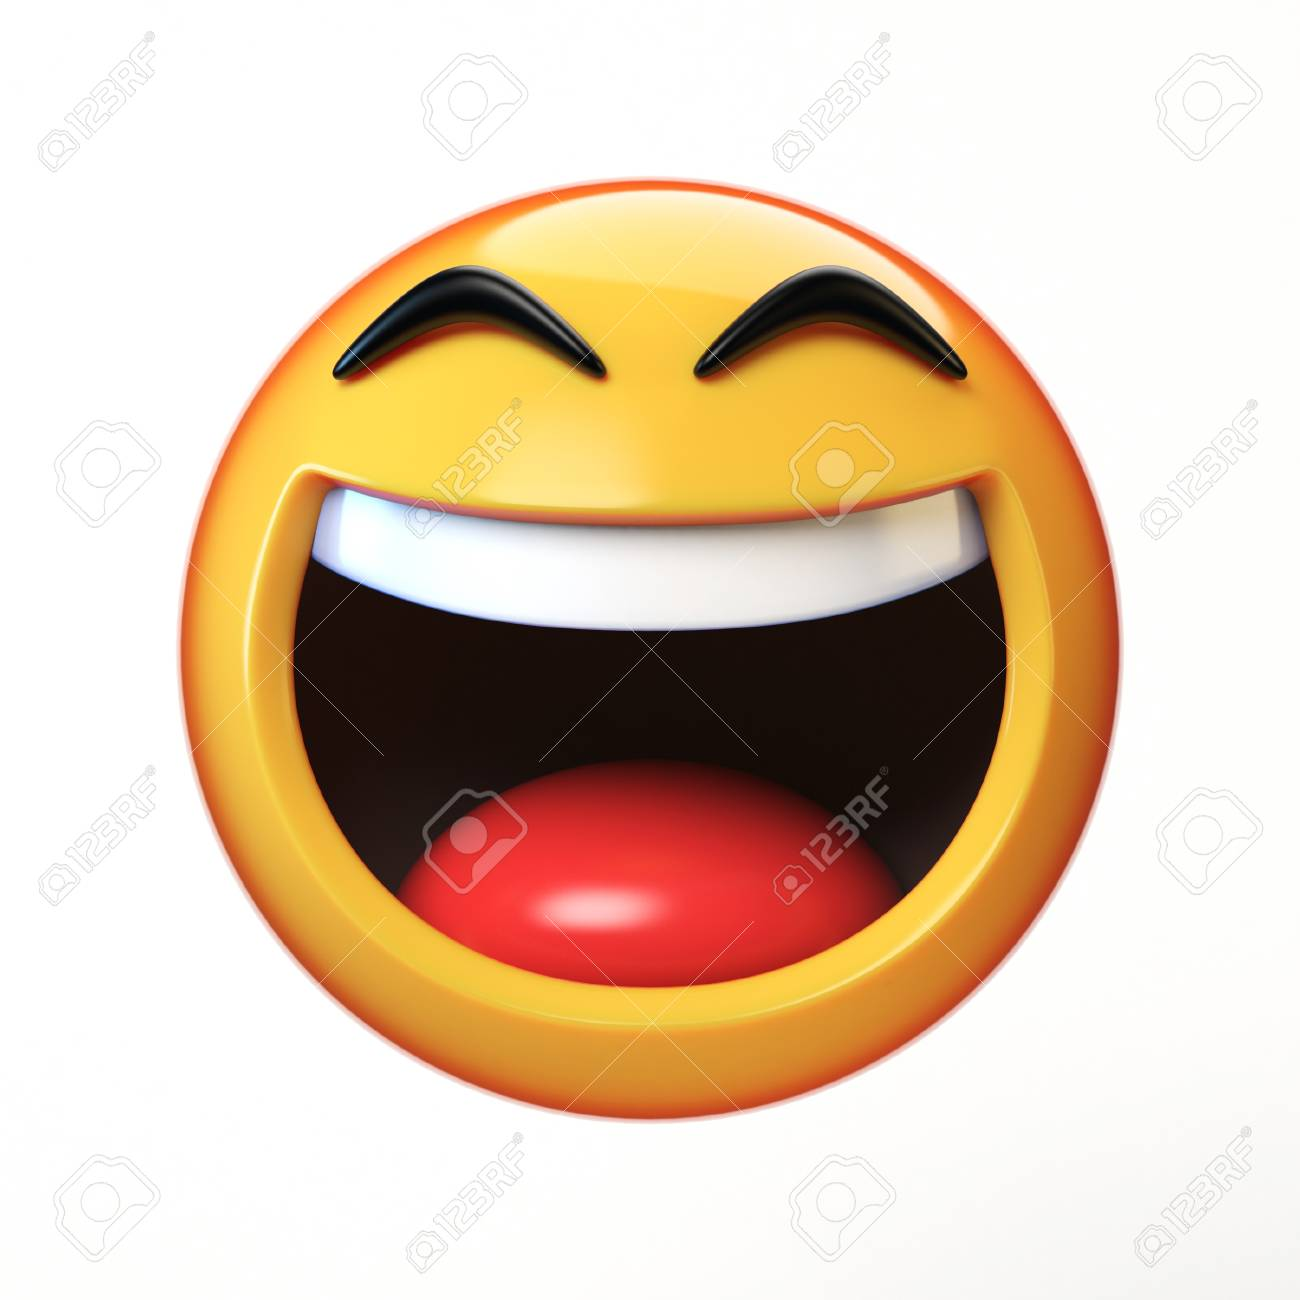 LoL Emoji isolated on white background, laughing face emoticon